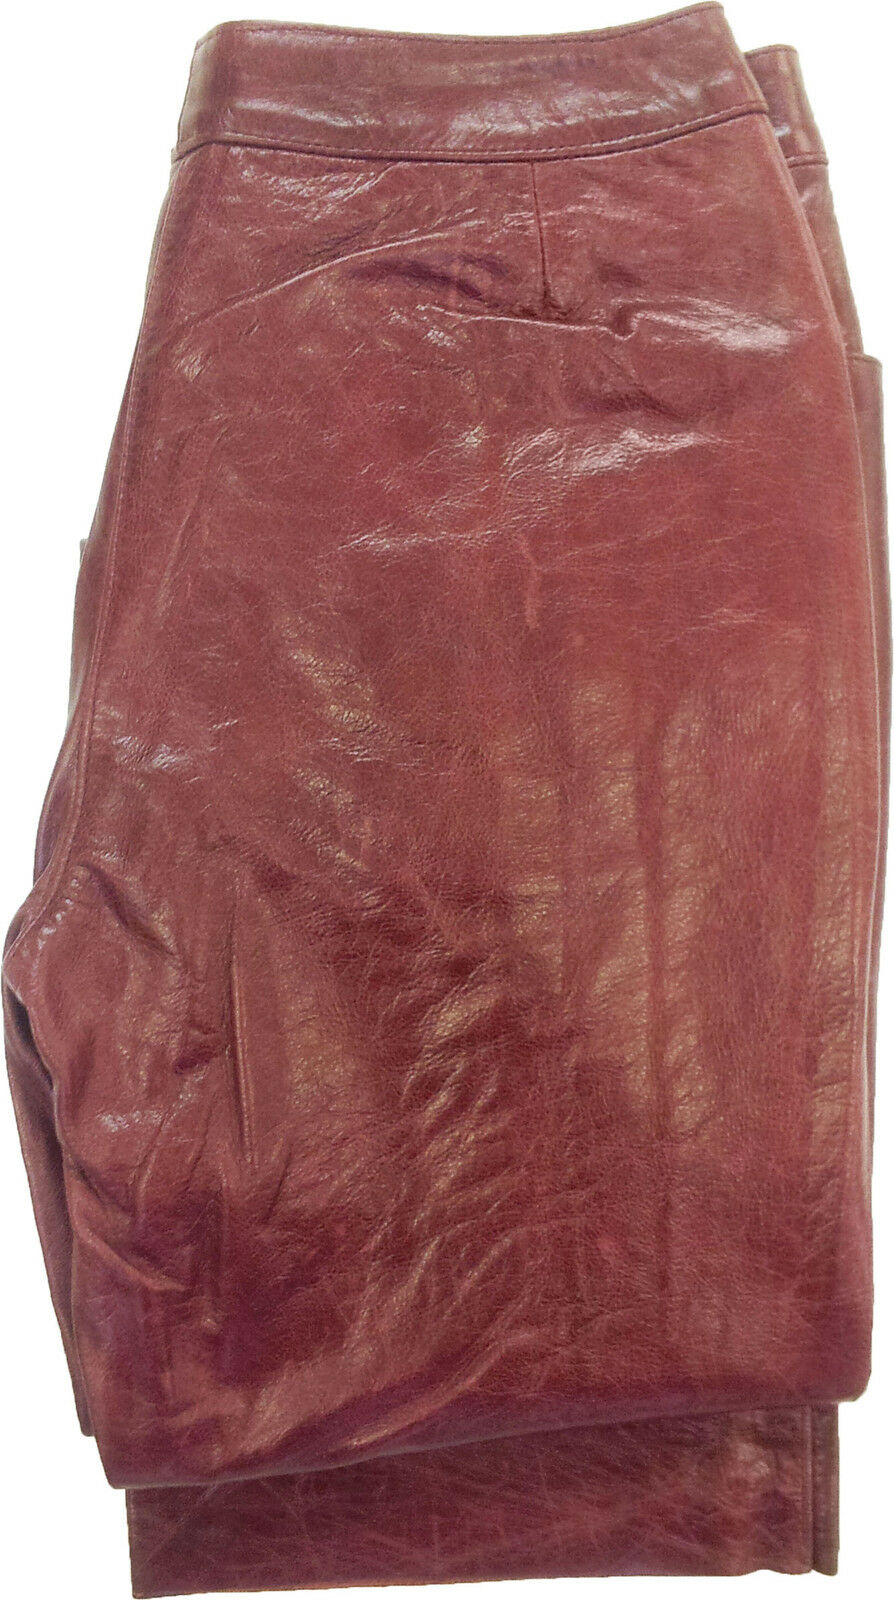 UNICORN LONDON Womens Cherry Leather Trousers Jeans T